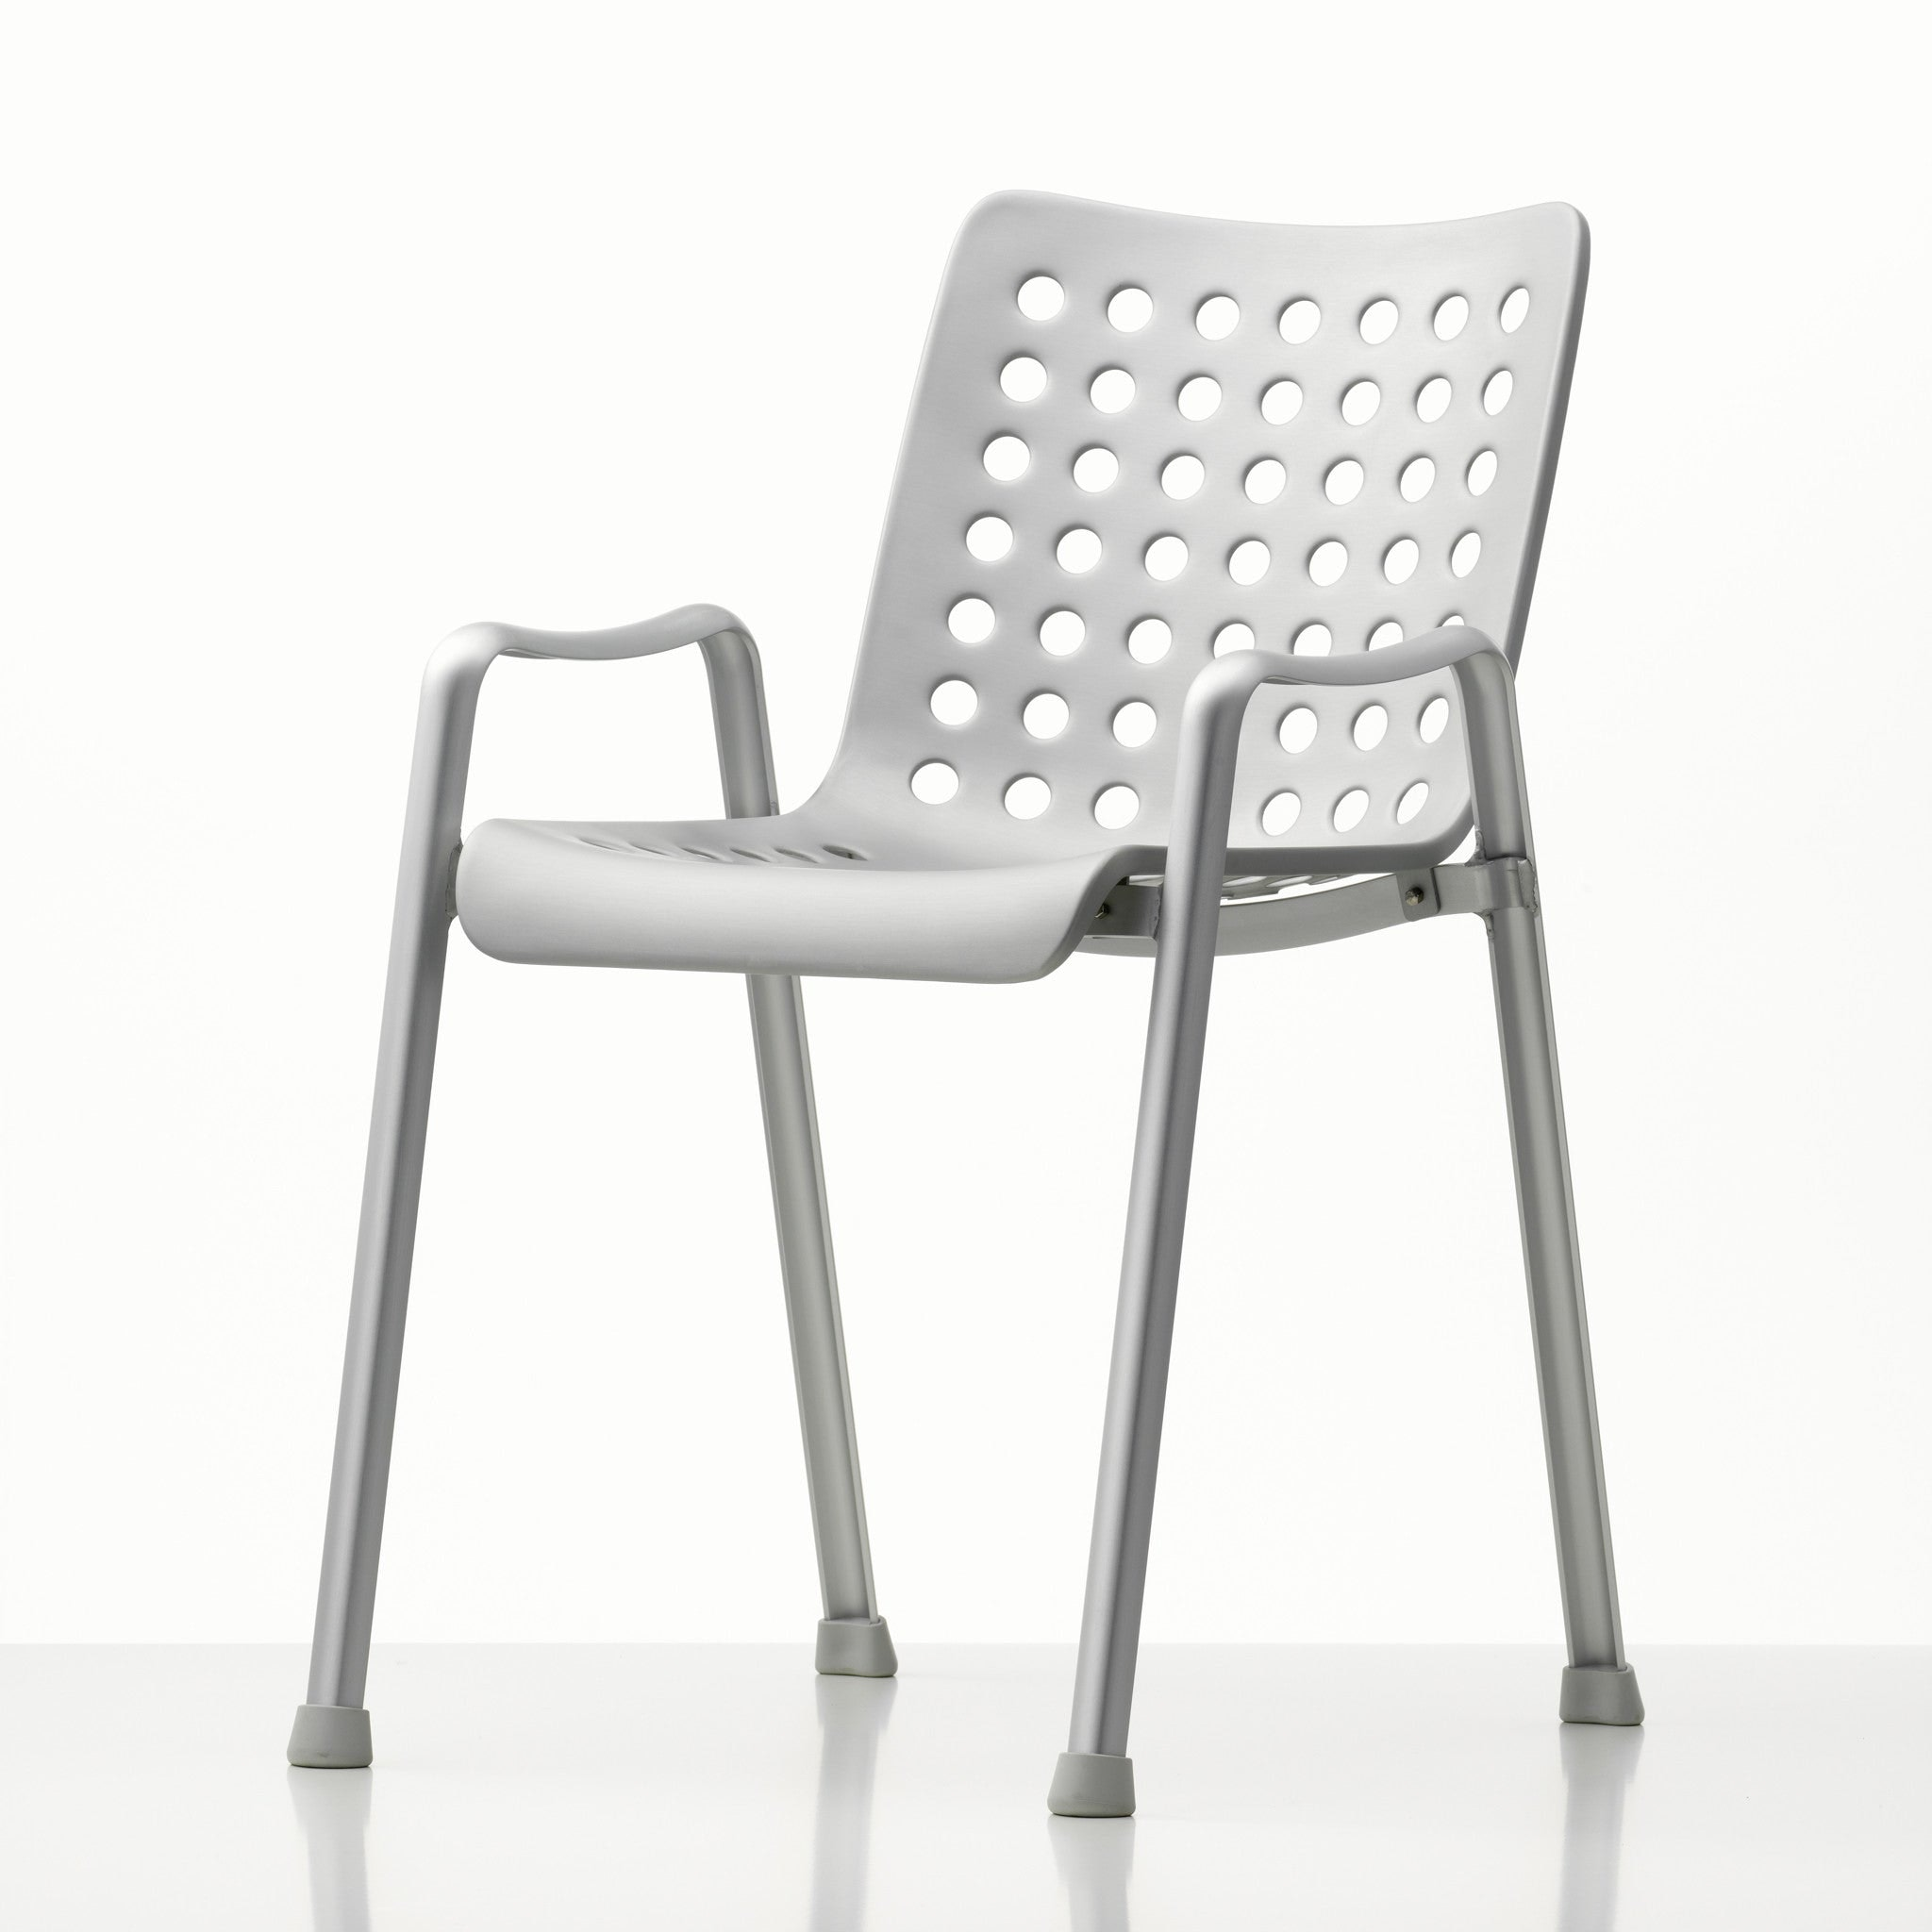 Landi Chair by Hans Coray